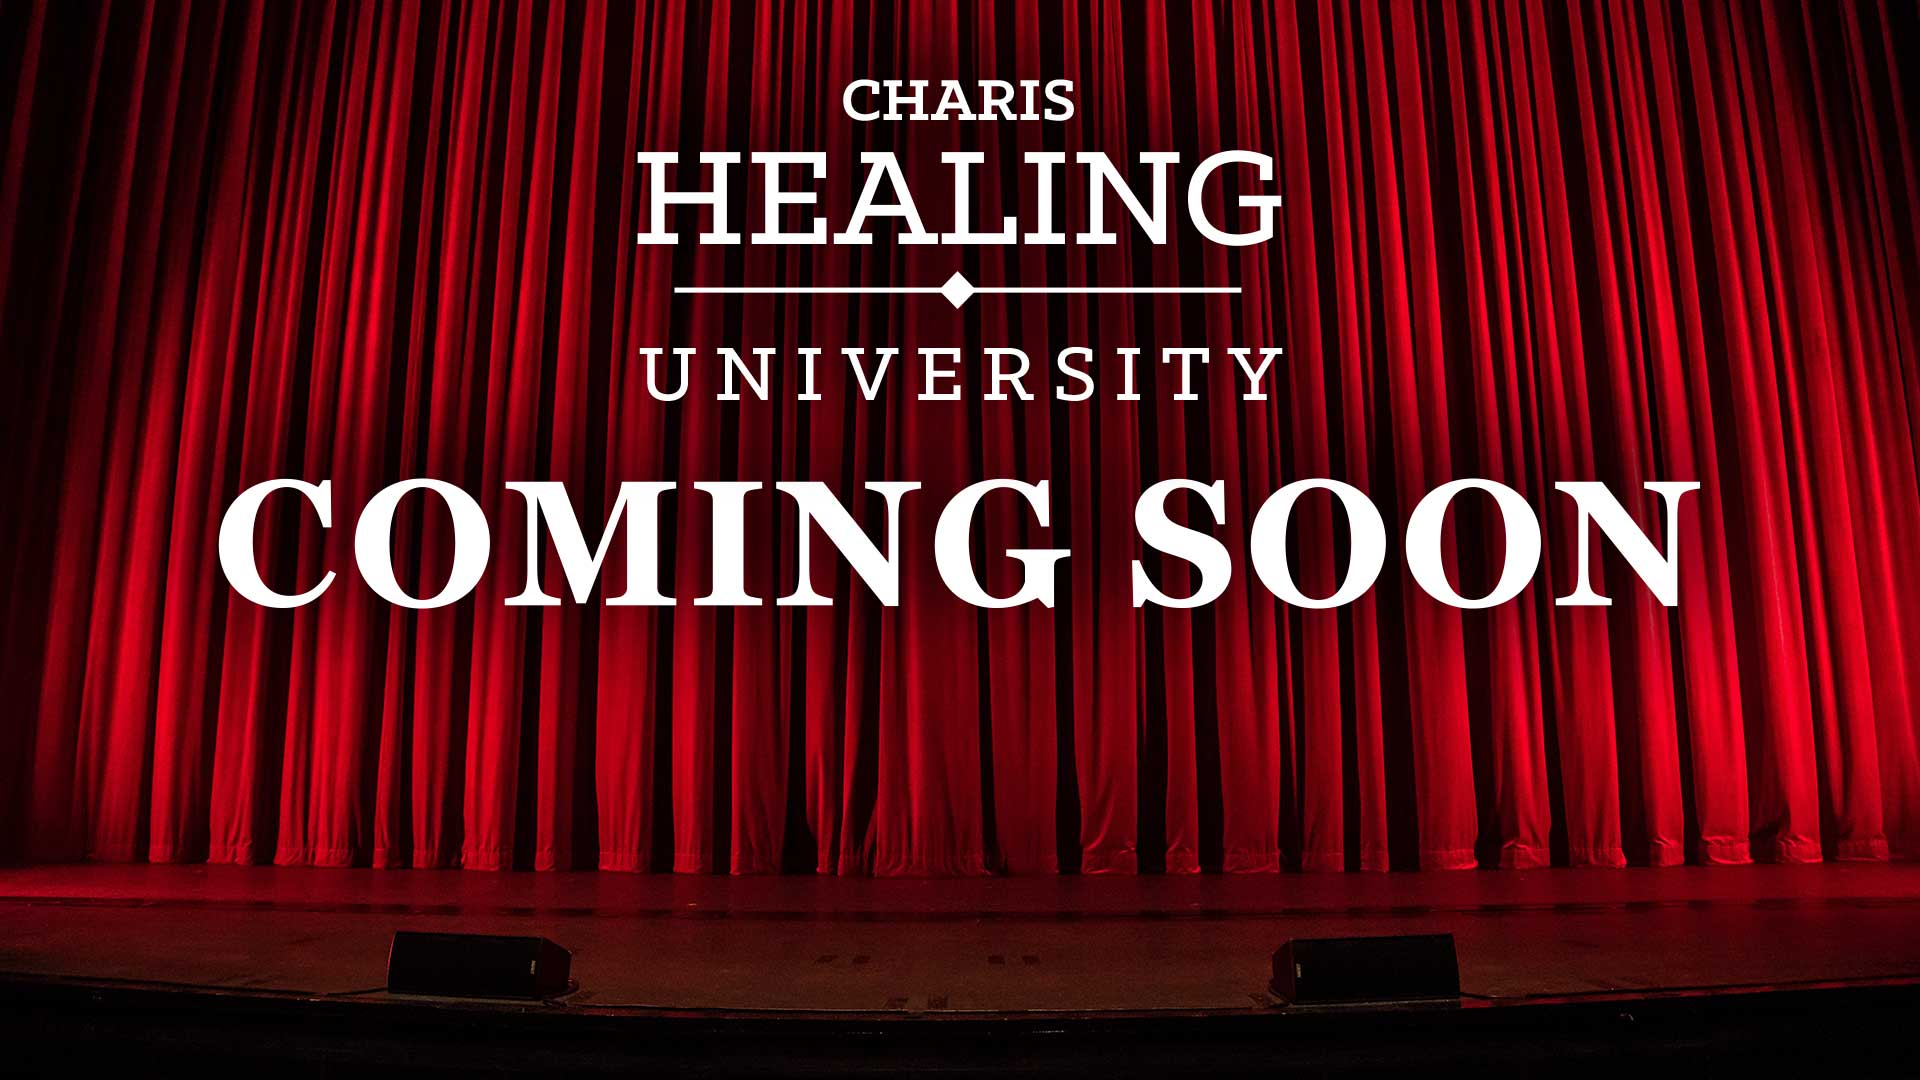 Coming Soon: Charis Healing University